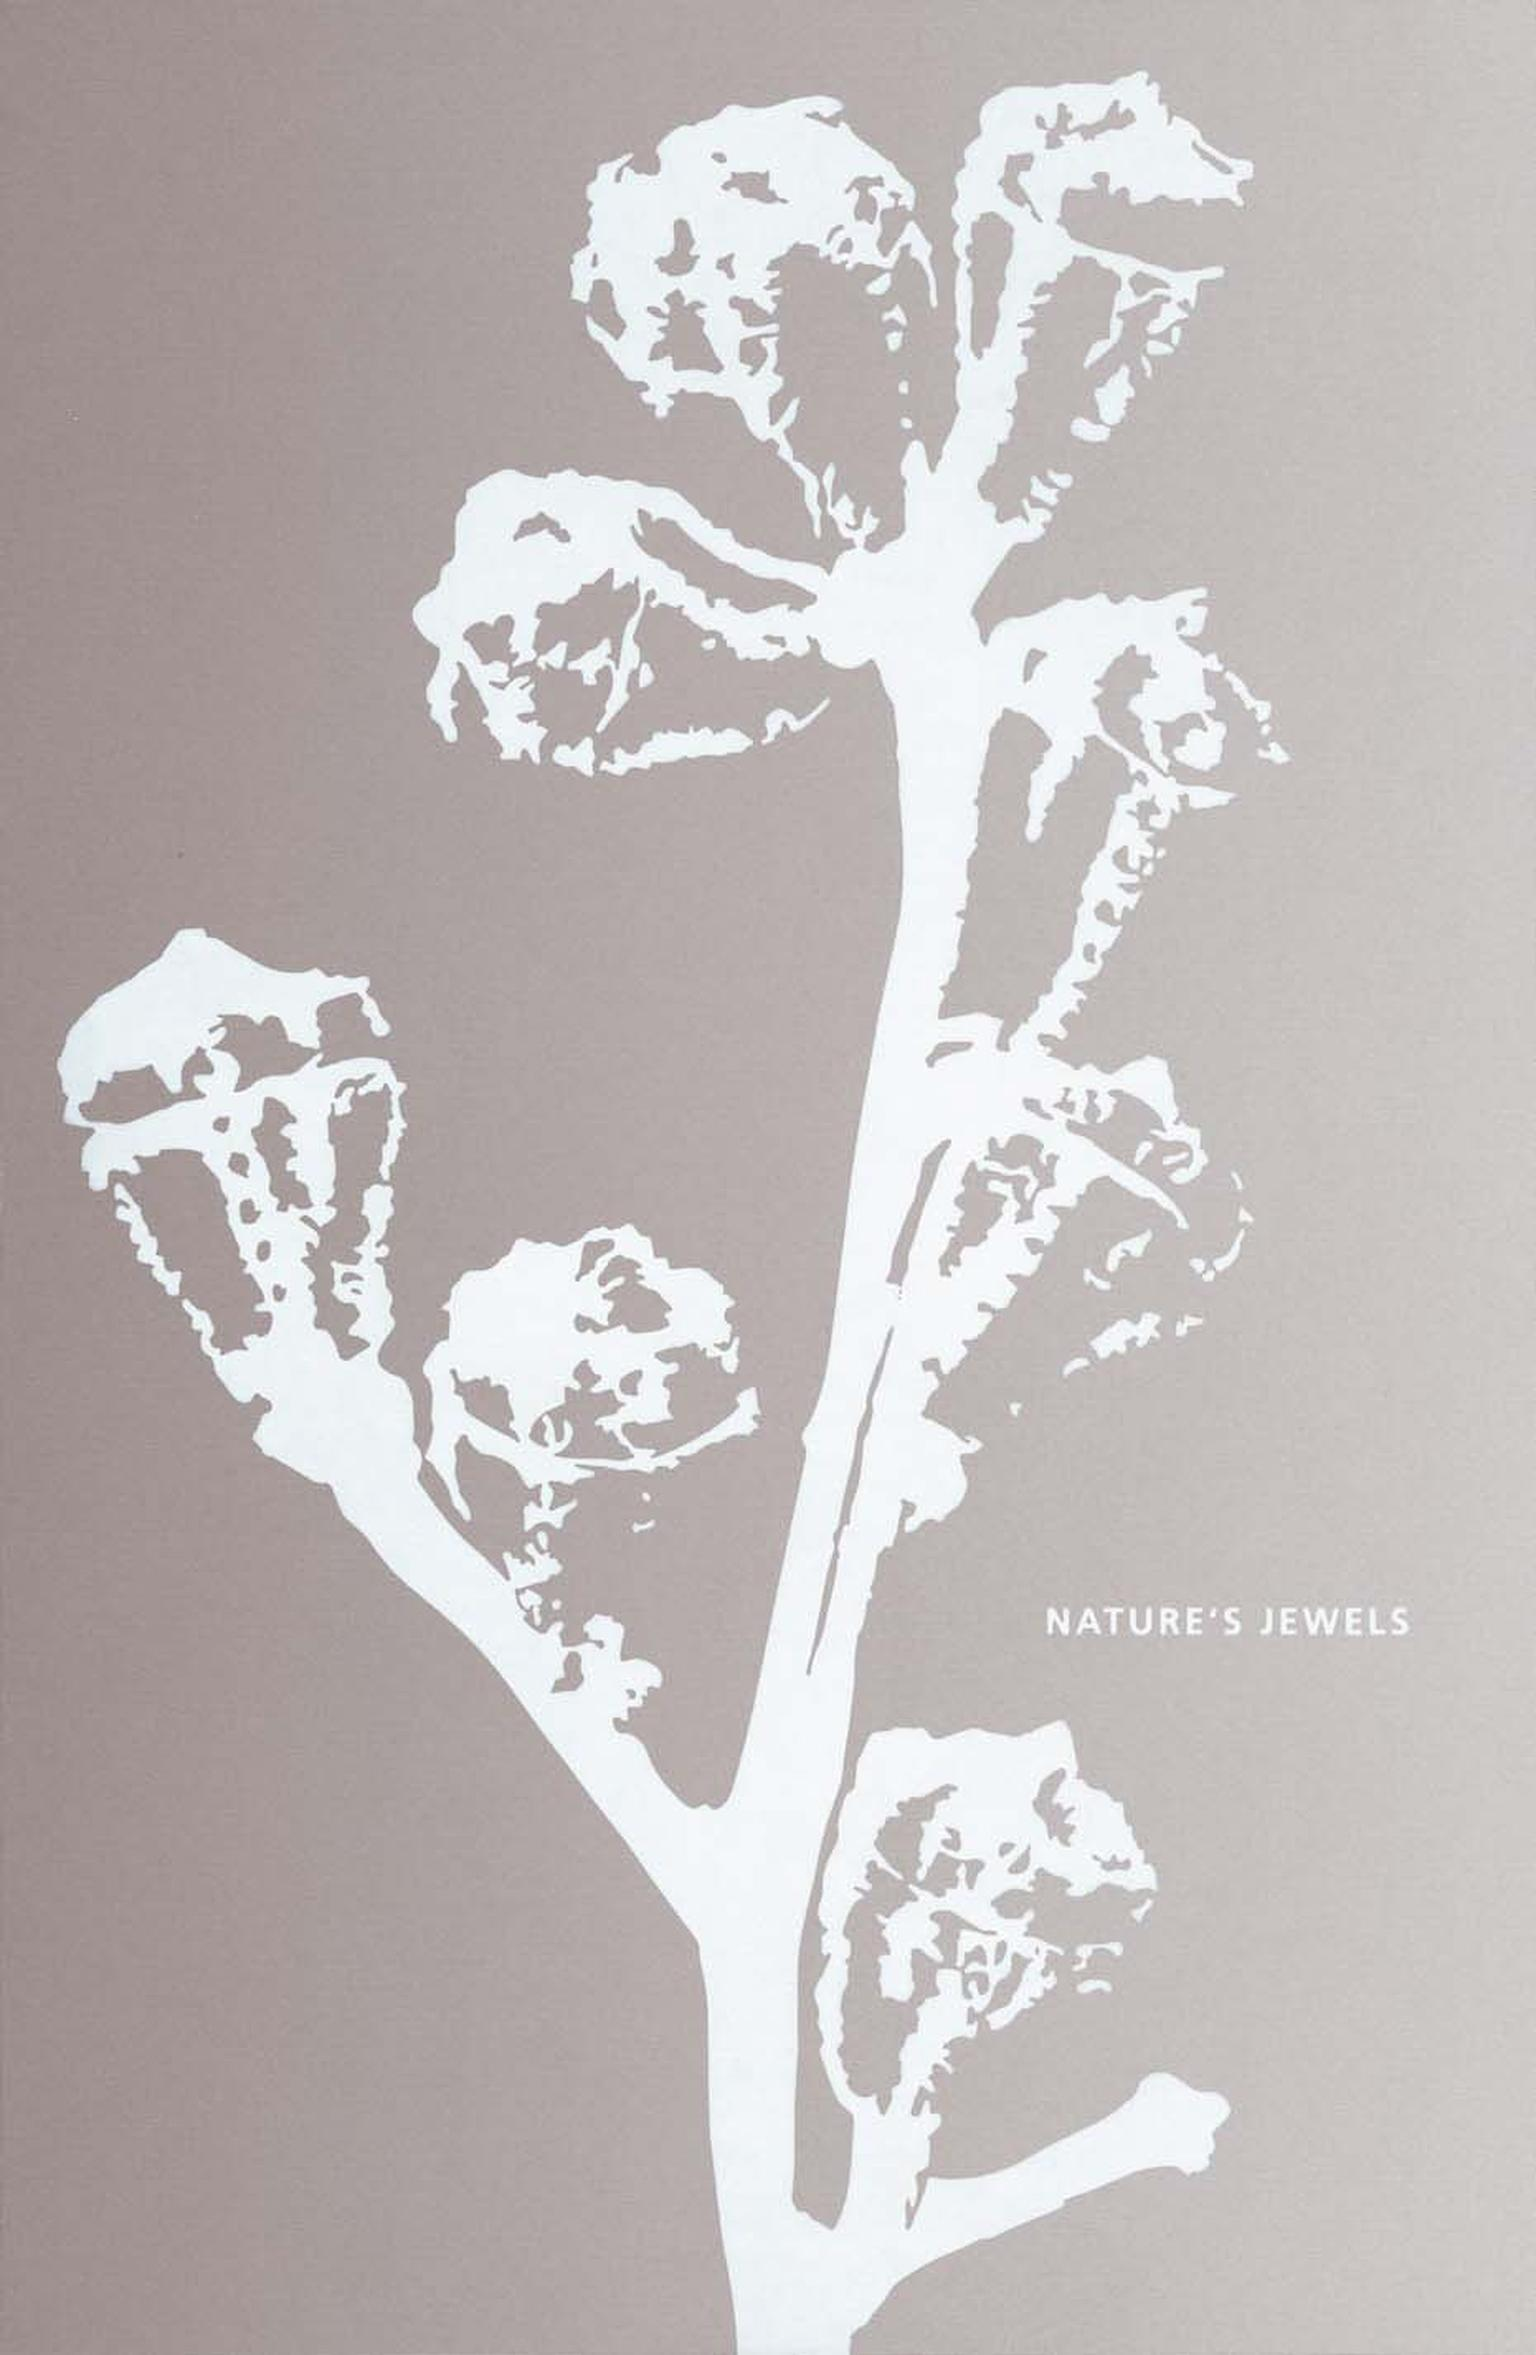 Hemmerle's new collection is accompanied by the publication of a new poetry book, titled 'Nature's Jewels', which pairs each creation with a poem